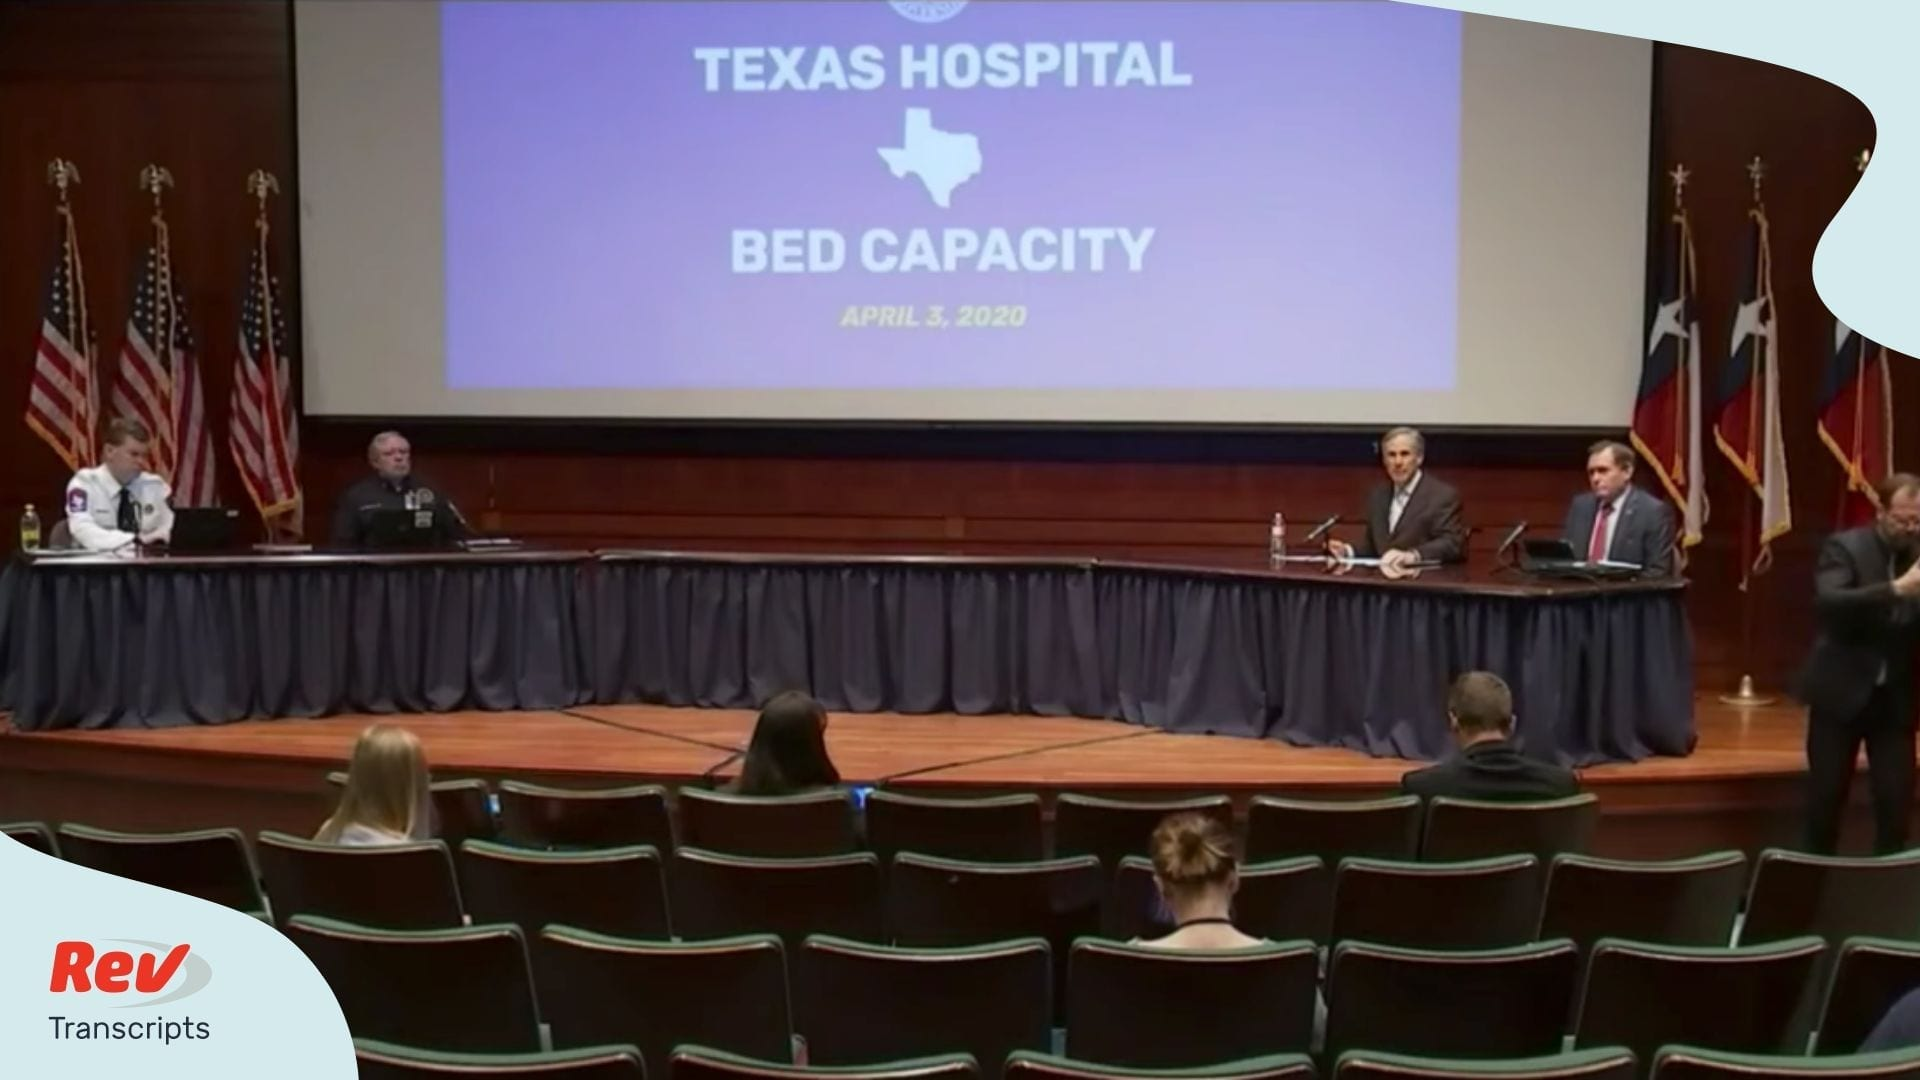 Greg Abbott Texas governor COVID 19 briefing april 3